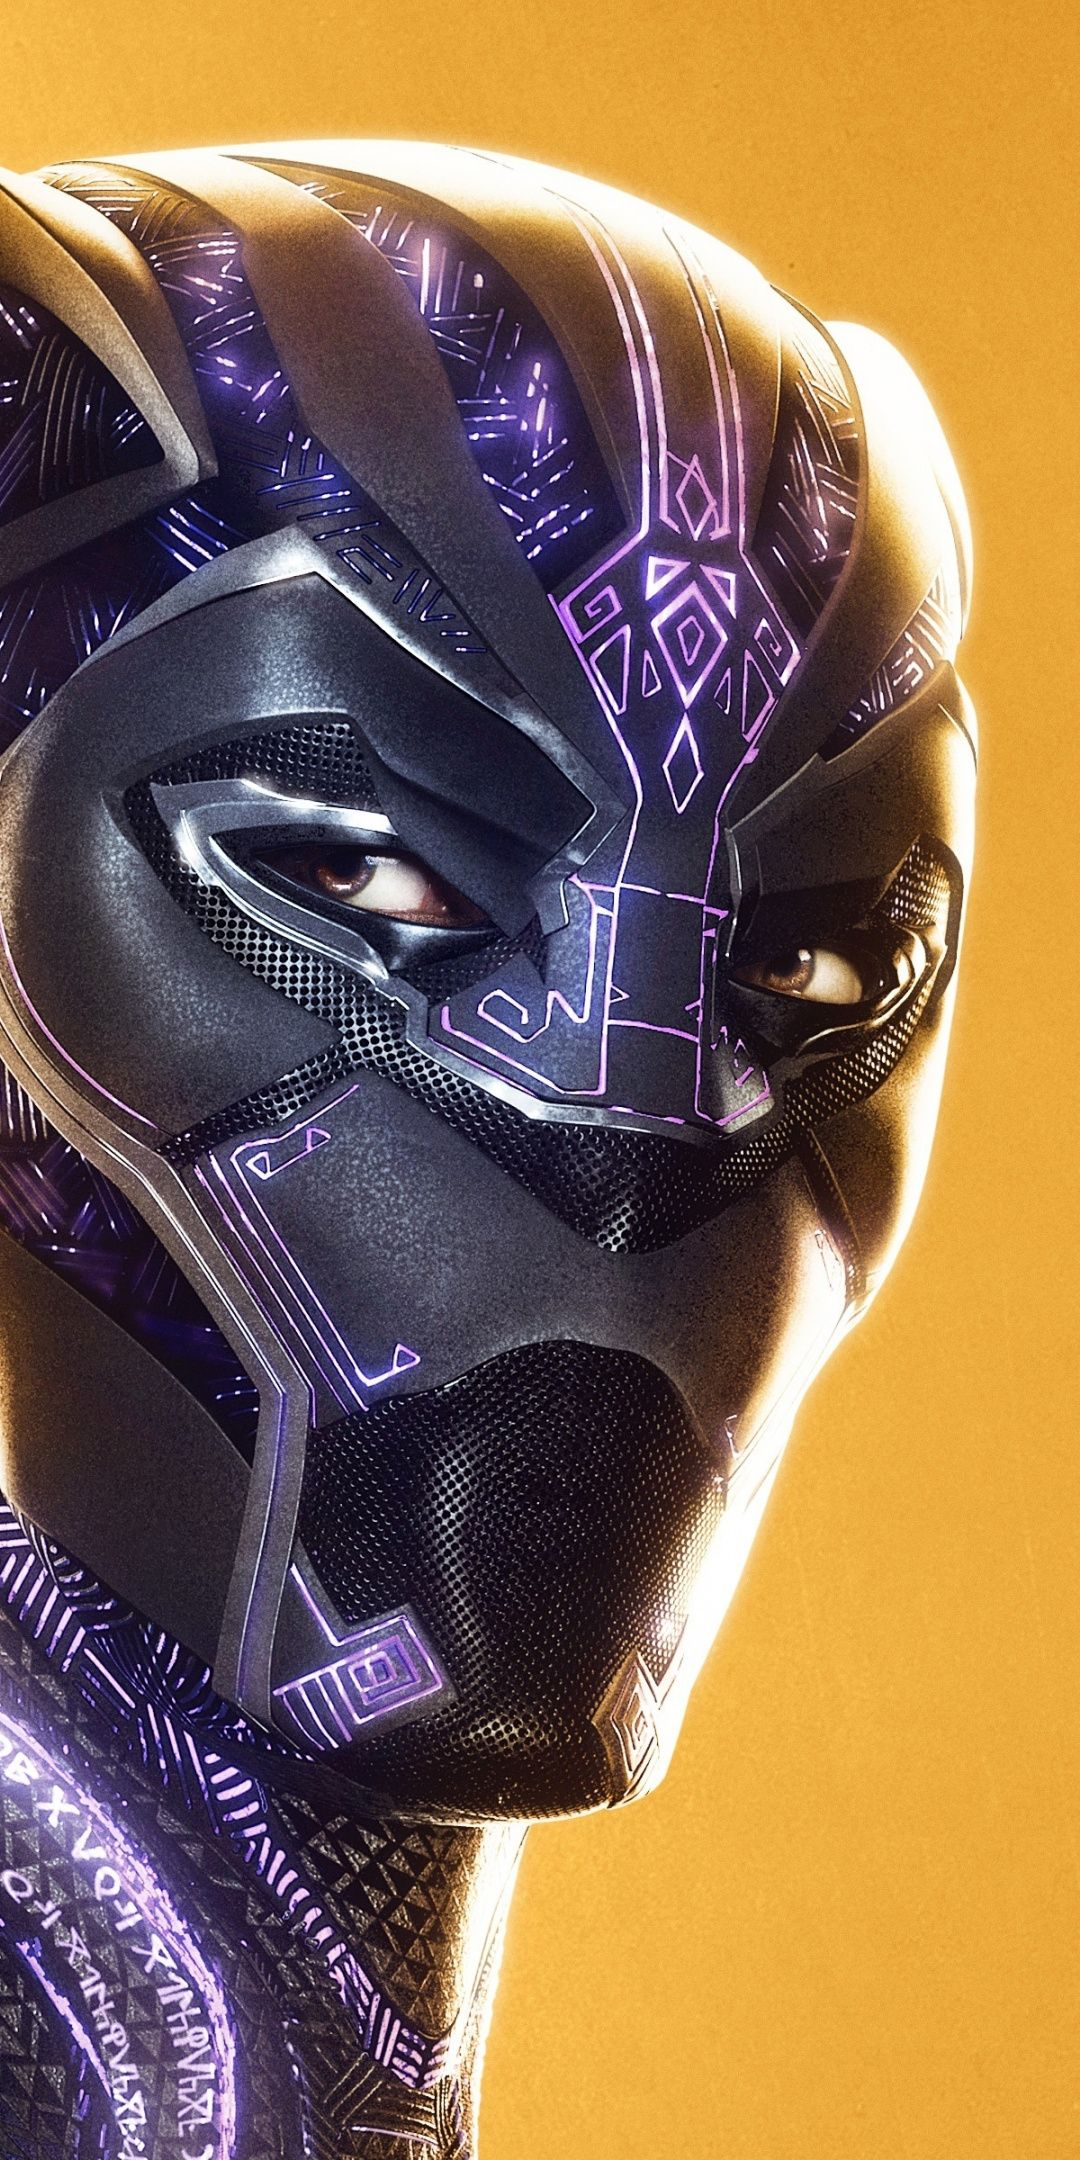 Black Panther Marvel Comics Movie Avengers Infinity War 1080x2160 Wallpaper Black Panther Marvel Black Panther Comic Black Panther Art